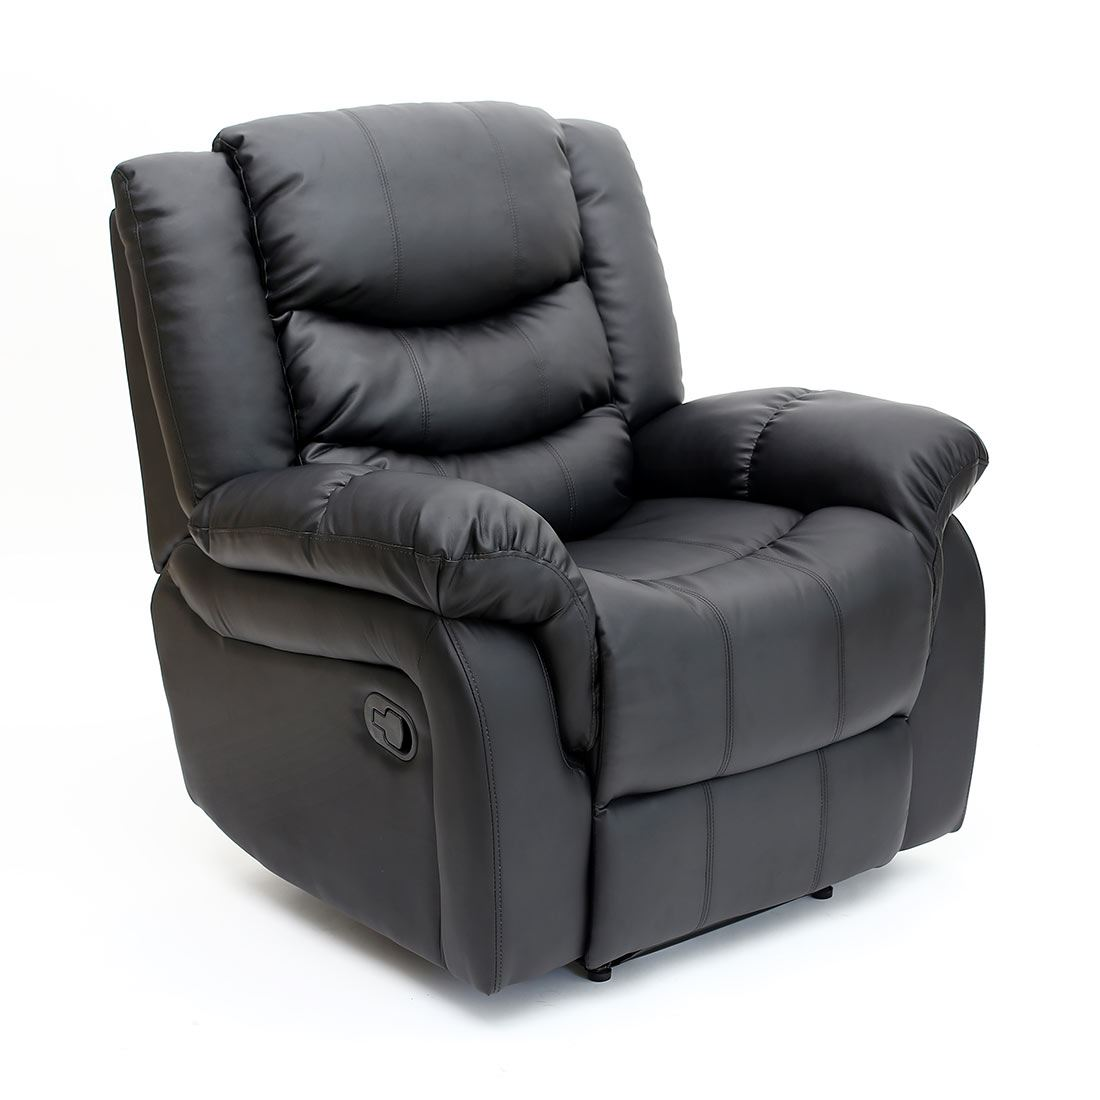 gaming chair ebay collapsible beach chairs seattle leather recliner armchair sofa home lounge